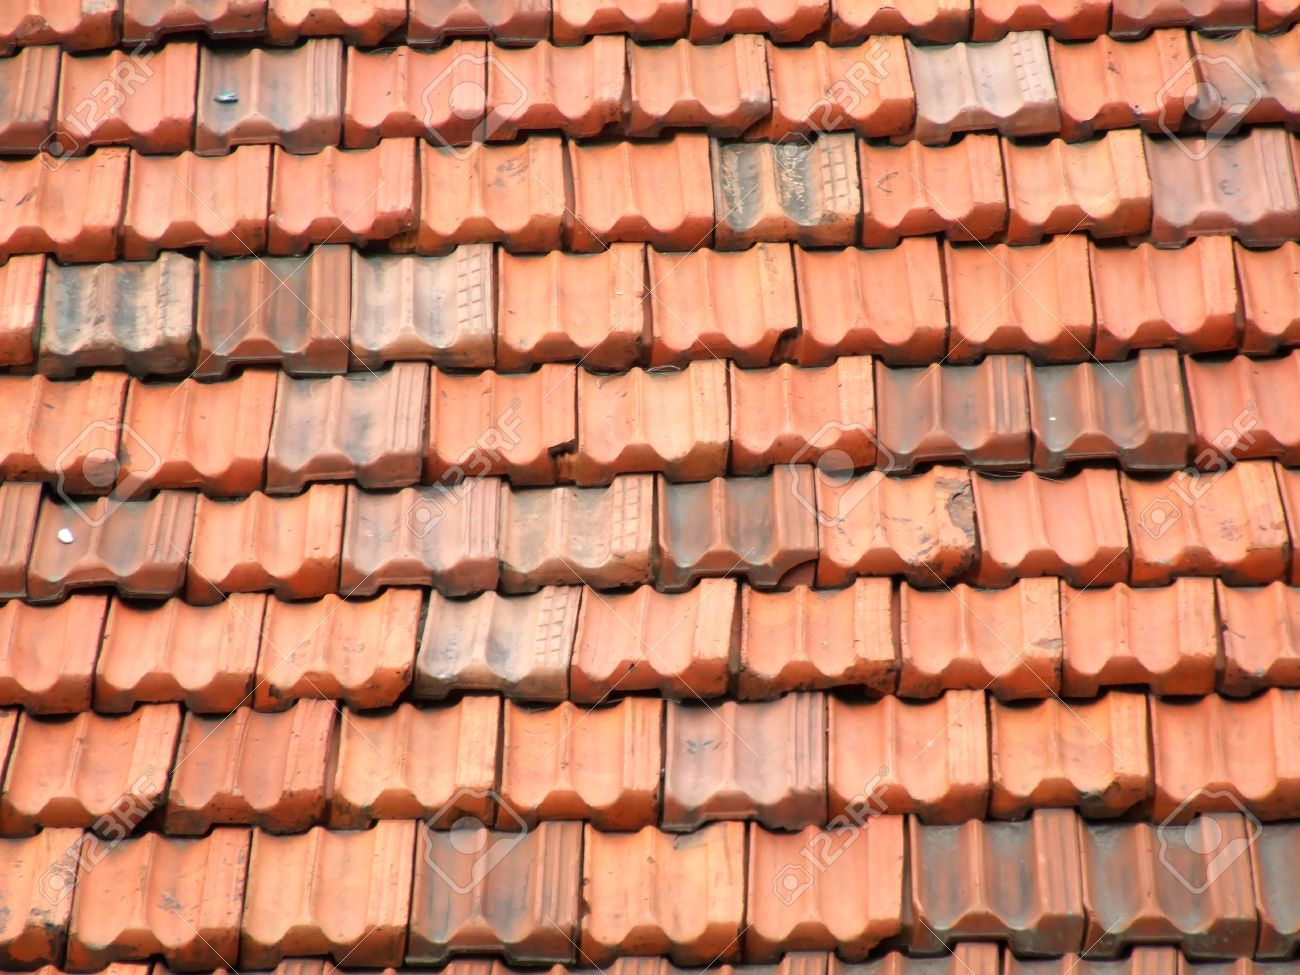 Red and orange roof tiles on an Italian residential building in a small town. Ceramic slate roof. Stock Photo - 1717157